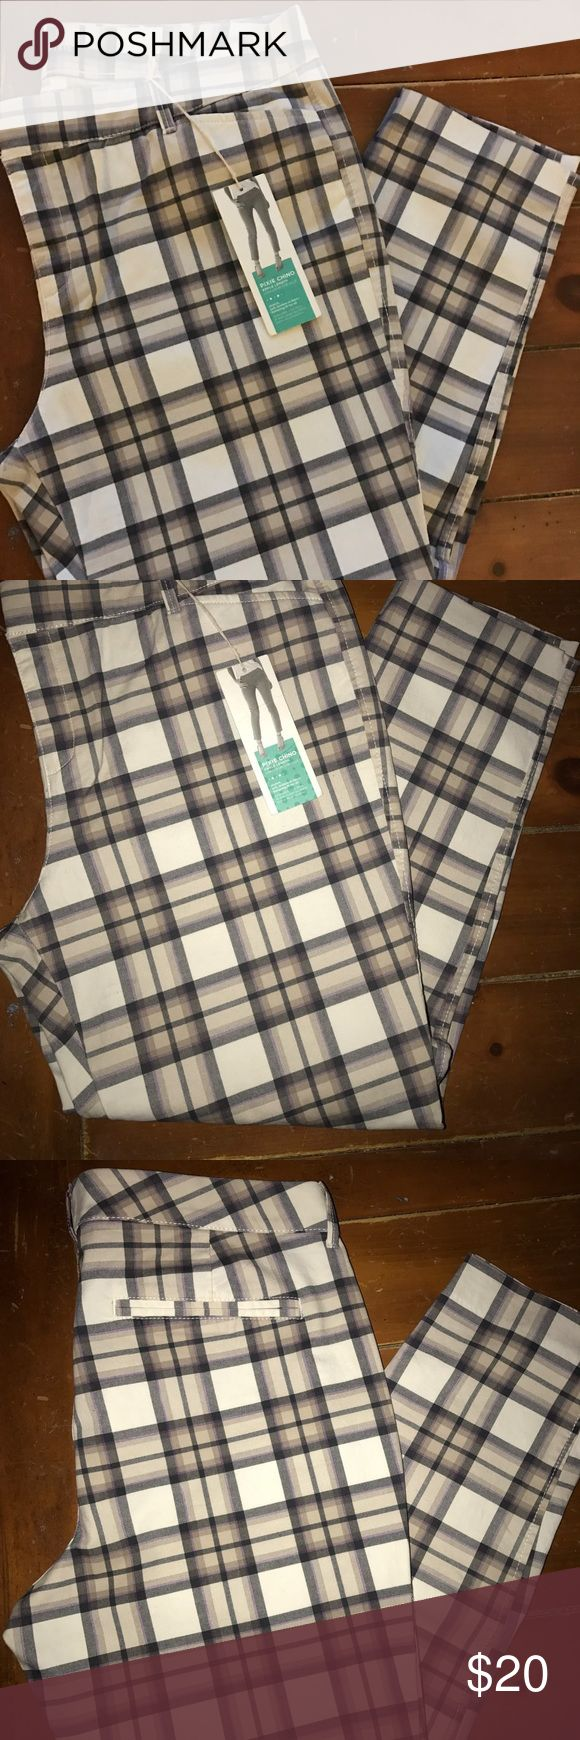 Old Navy Pixie Chino Ankle Length Pants Brand new with tags. Inseam is 25 inches. Old Navy Pants Ankle & Cropped